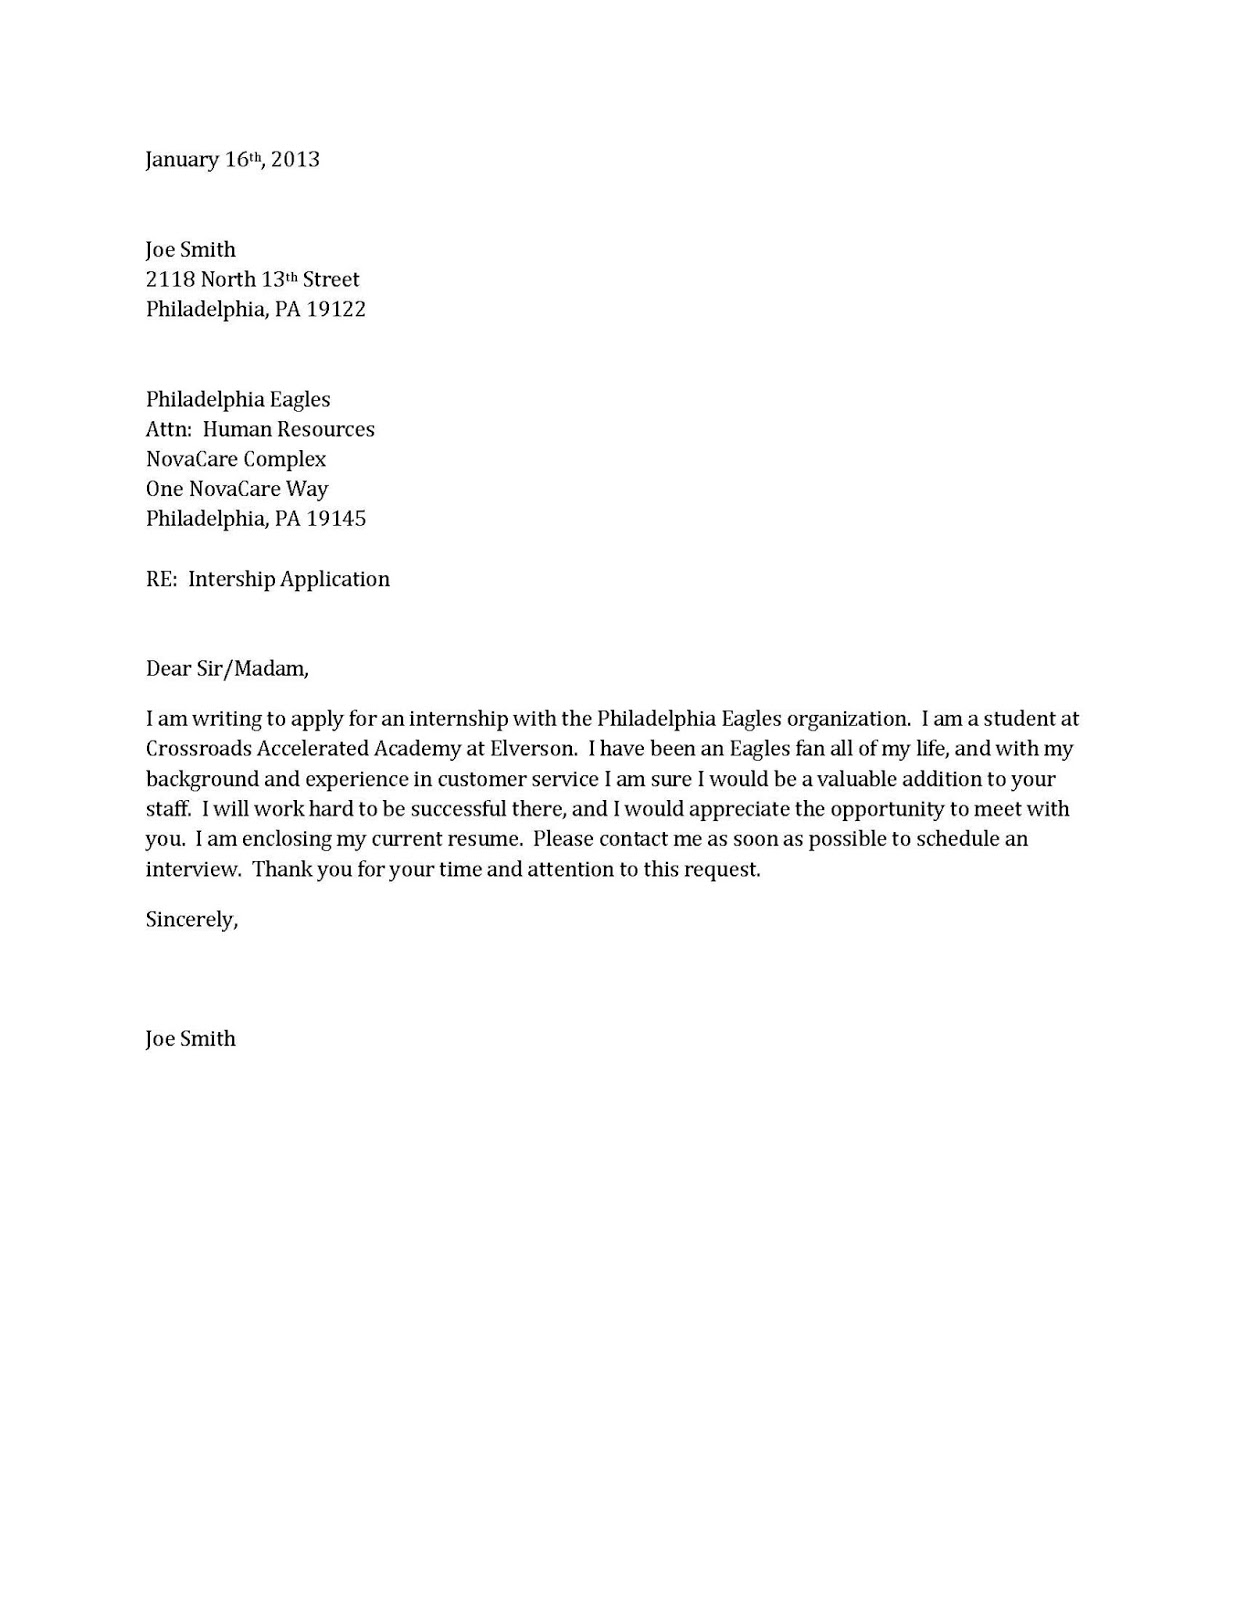 resume cover letter examples job application